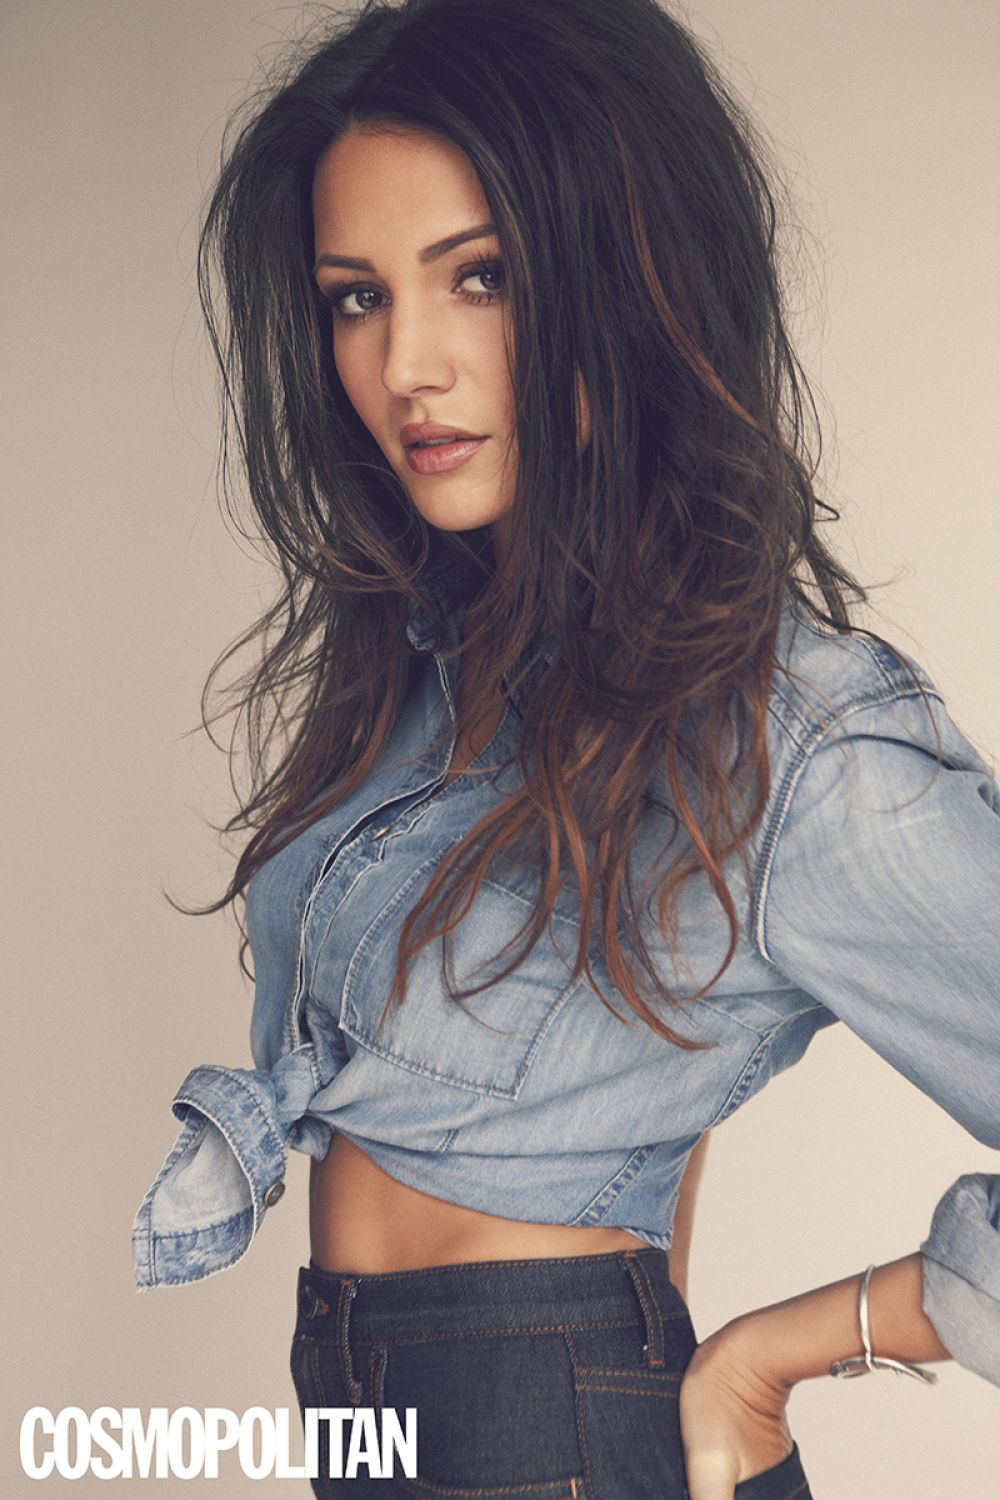 Michelle Keegan In Cosmopolitan Magazine UK May 2015 Issue HD Photos